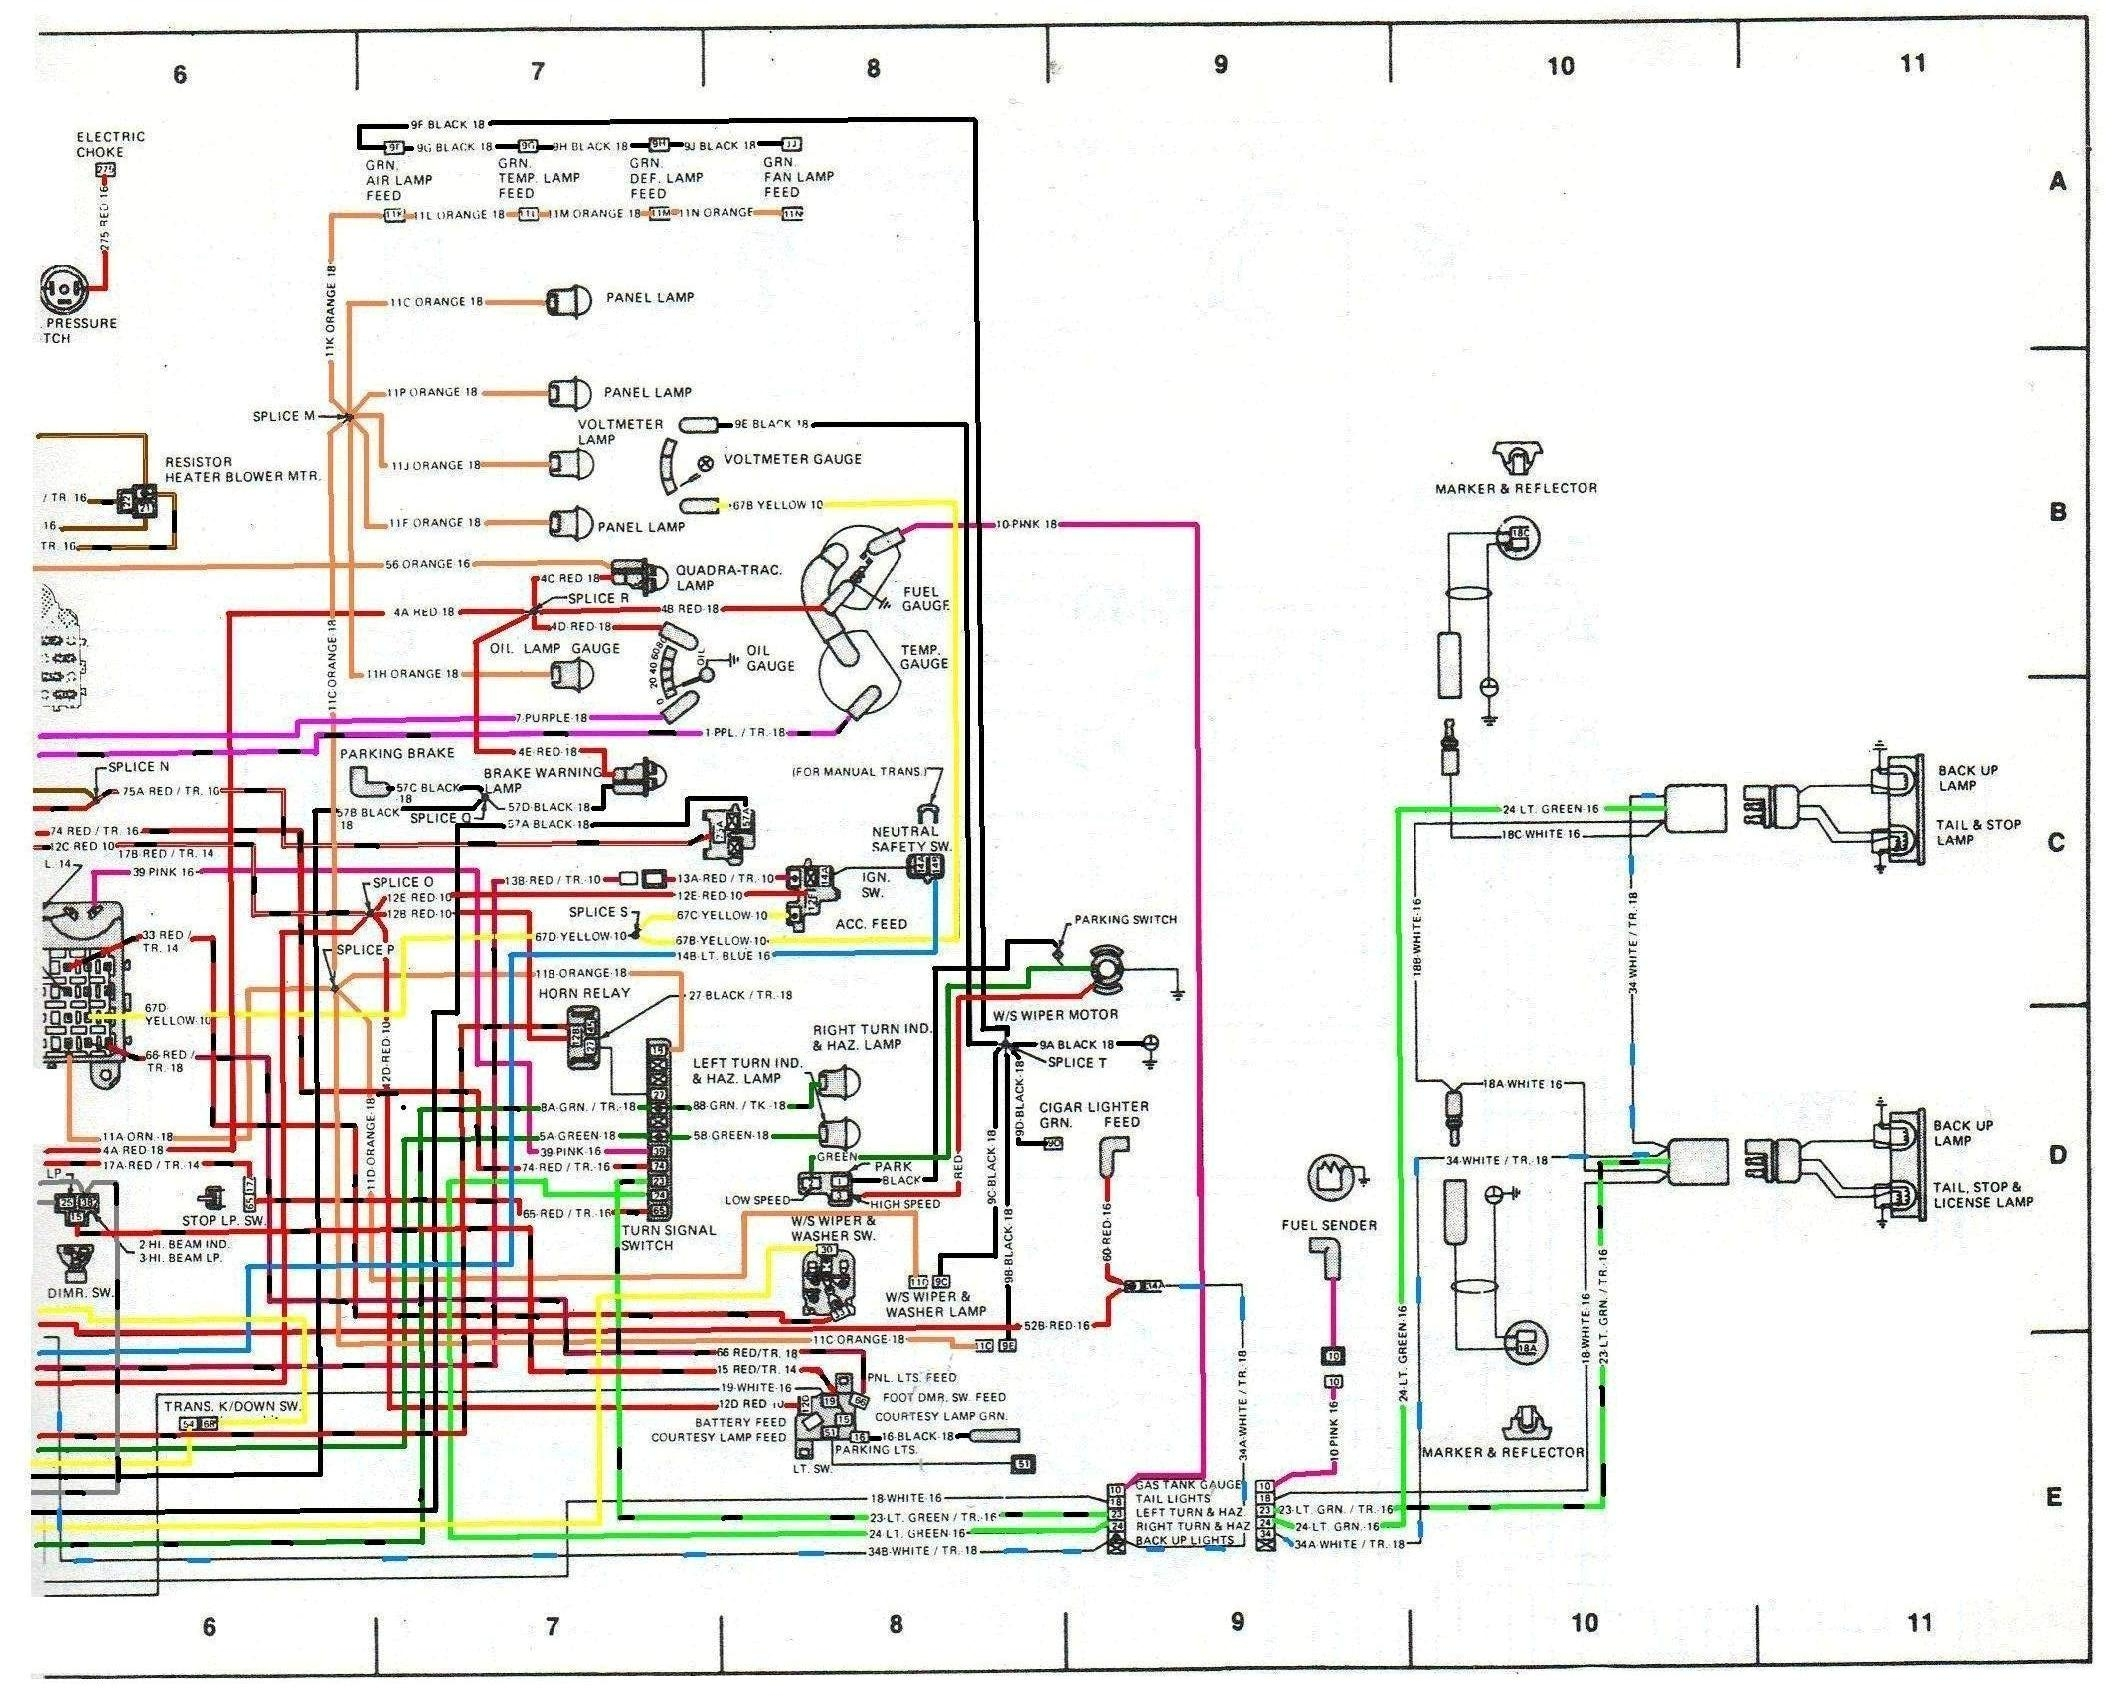 1952 willys wiring diagram online wiring diagram1952 willys wiring diagram best wiring library1952 willys wiring diagram [ 2120 x 1700 Pixel ]